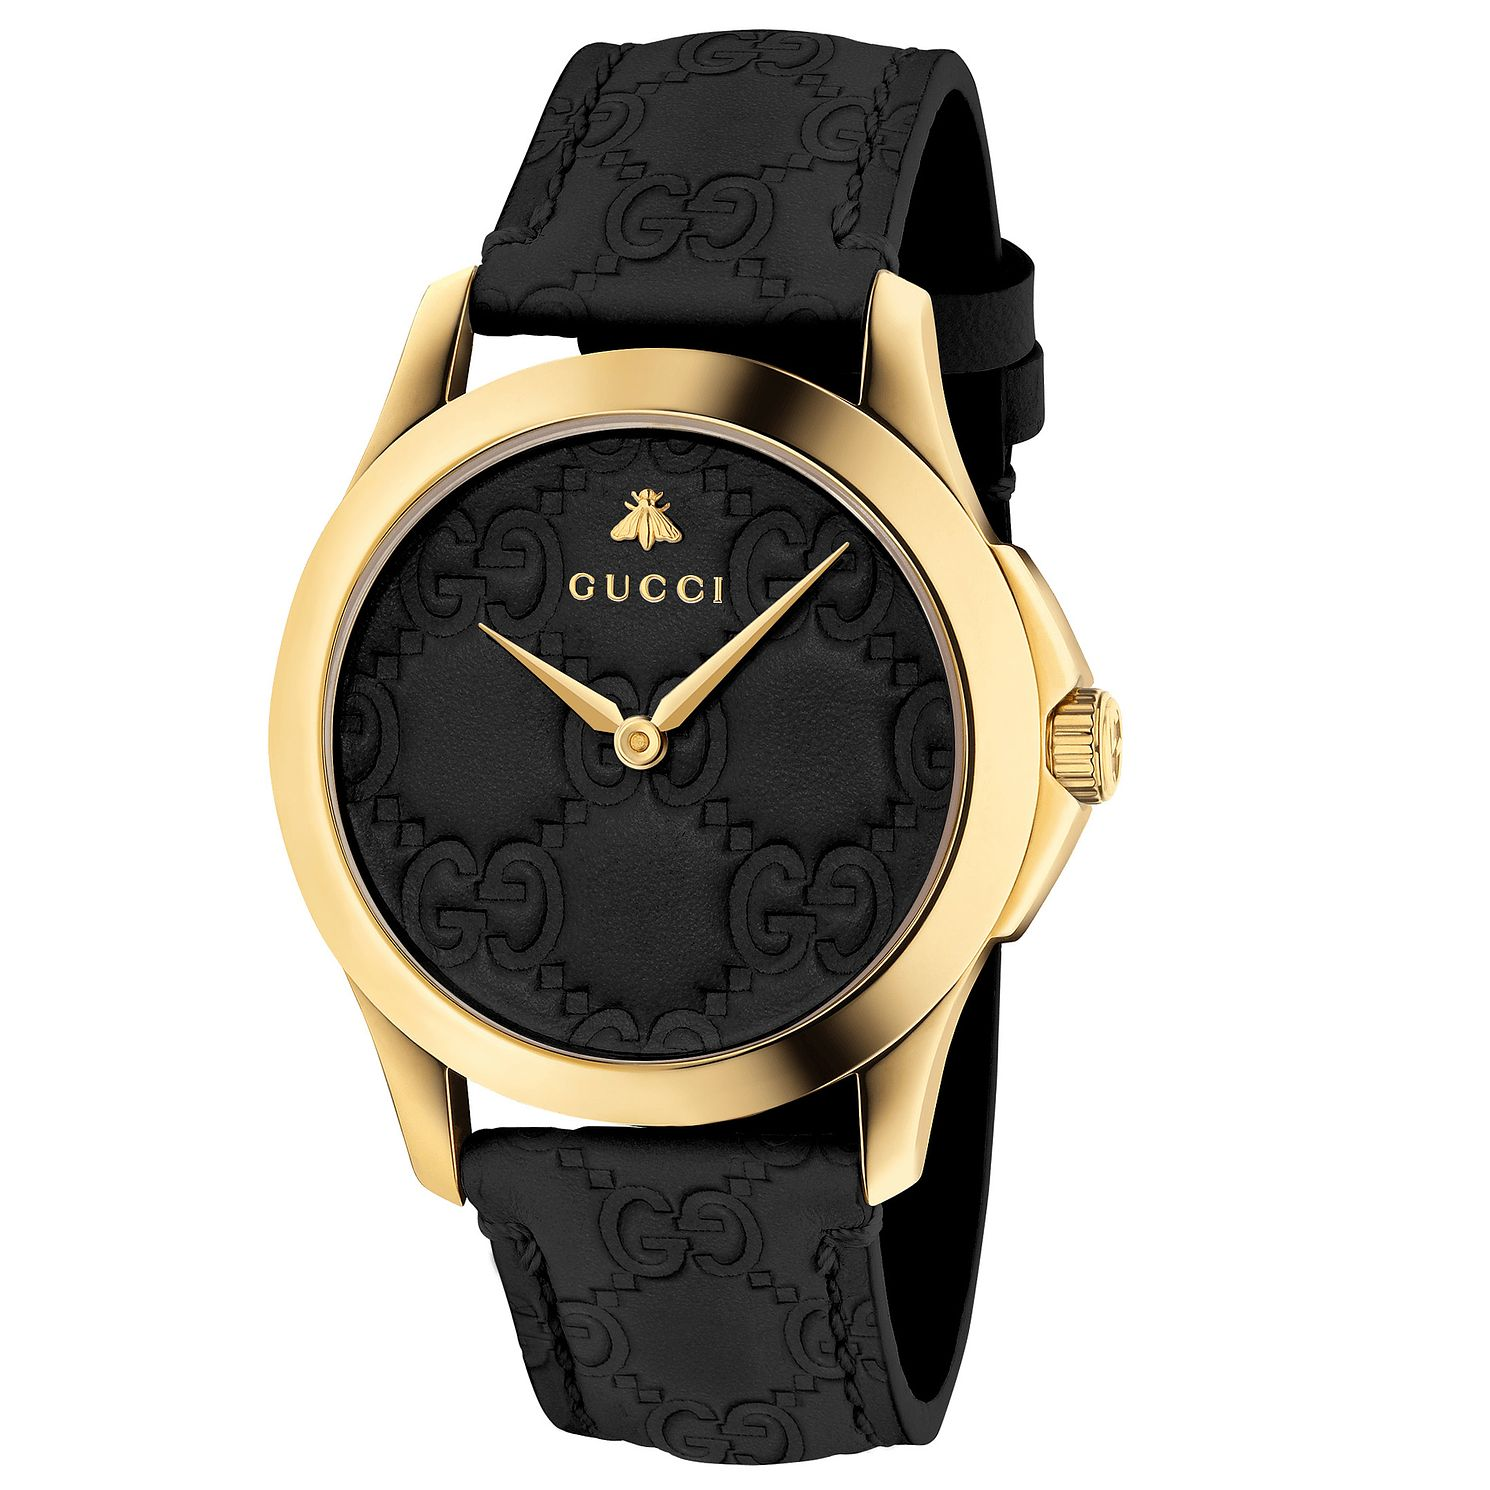 Gucci G-Timeless Black Leather Strap Watch - Product number 6433049